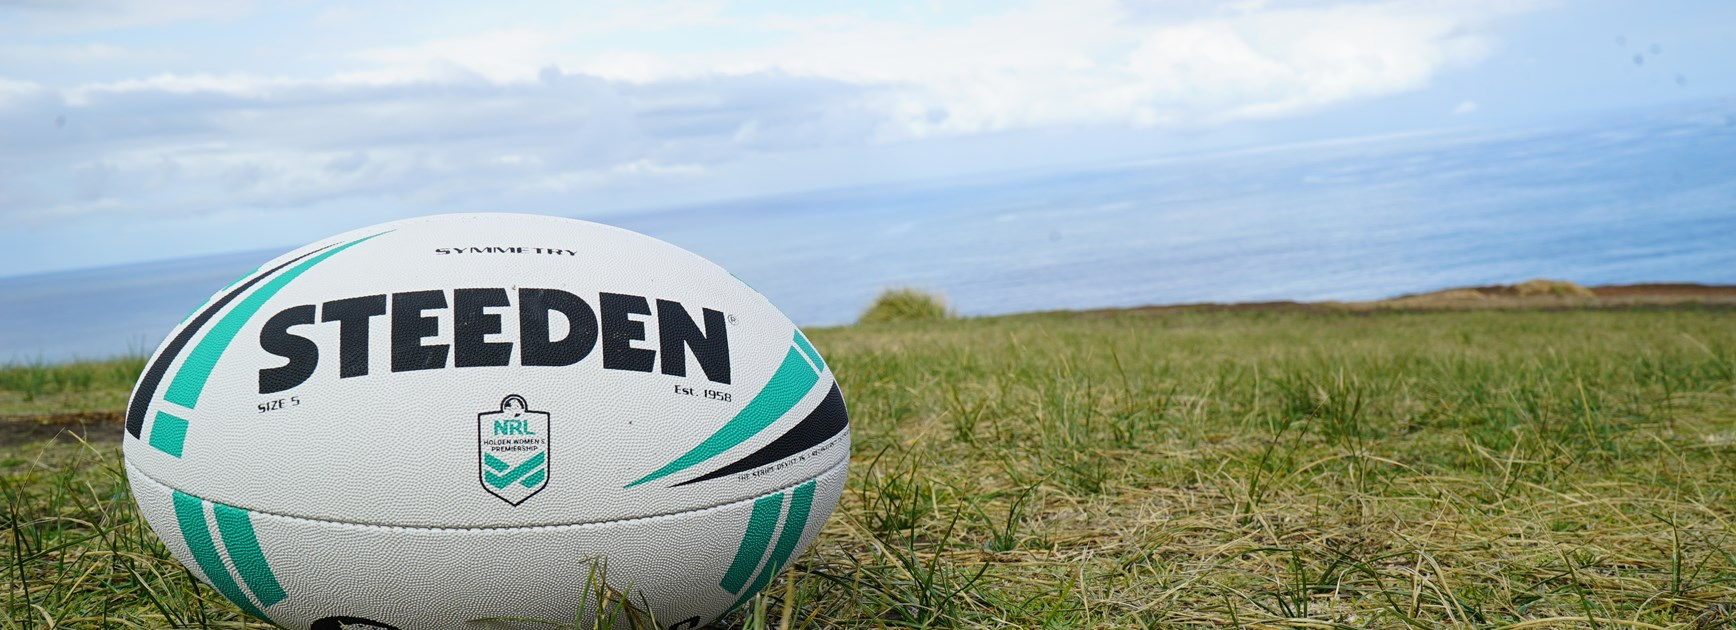 NRL Holden Women's Premiership: rules and matches summary